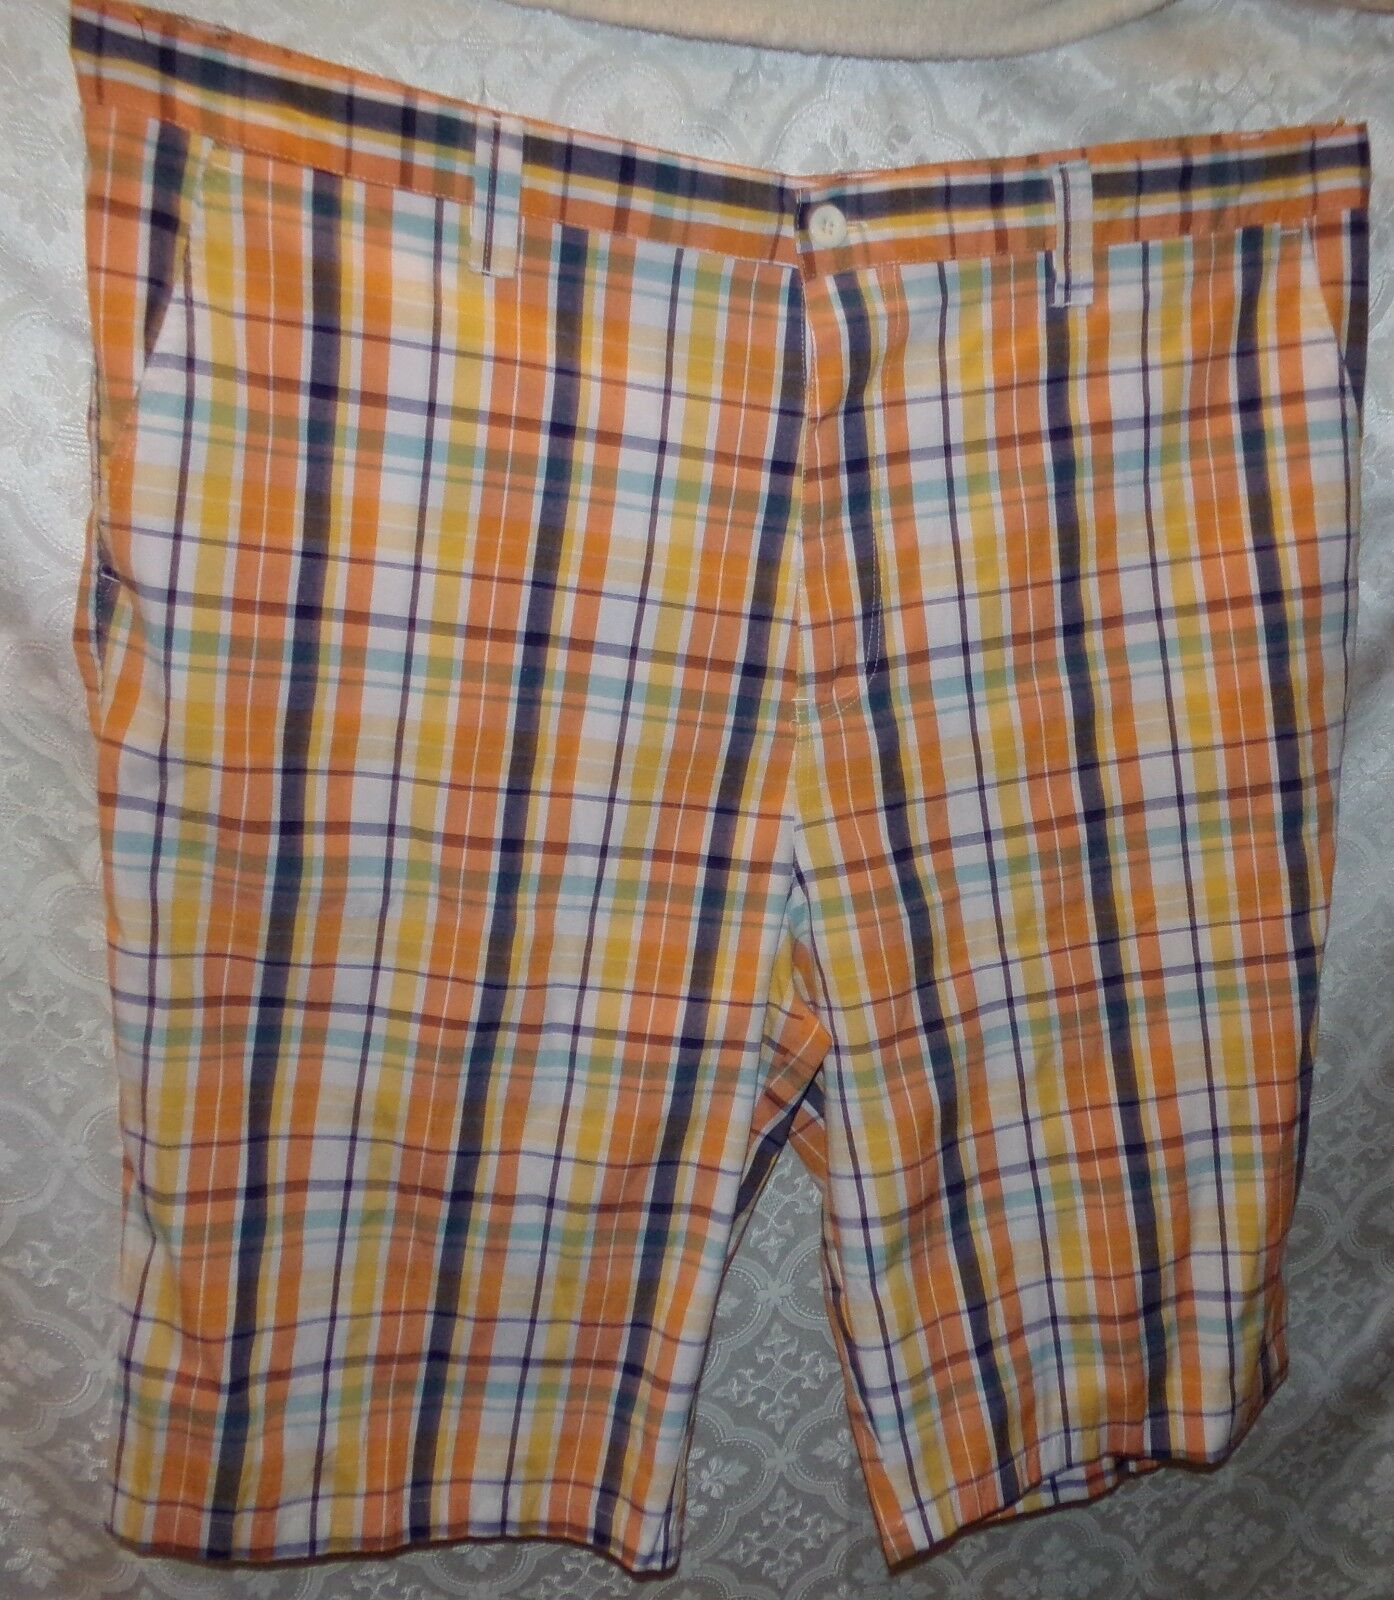 NBN Gear orange Plaid Shorts 50 Mens Flat Front